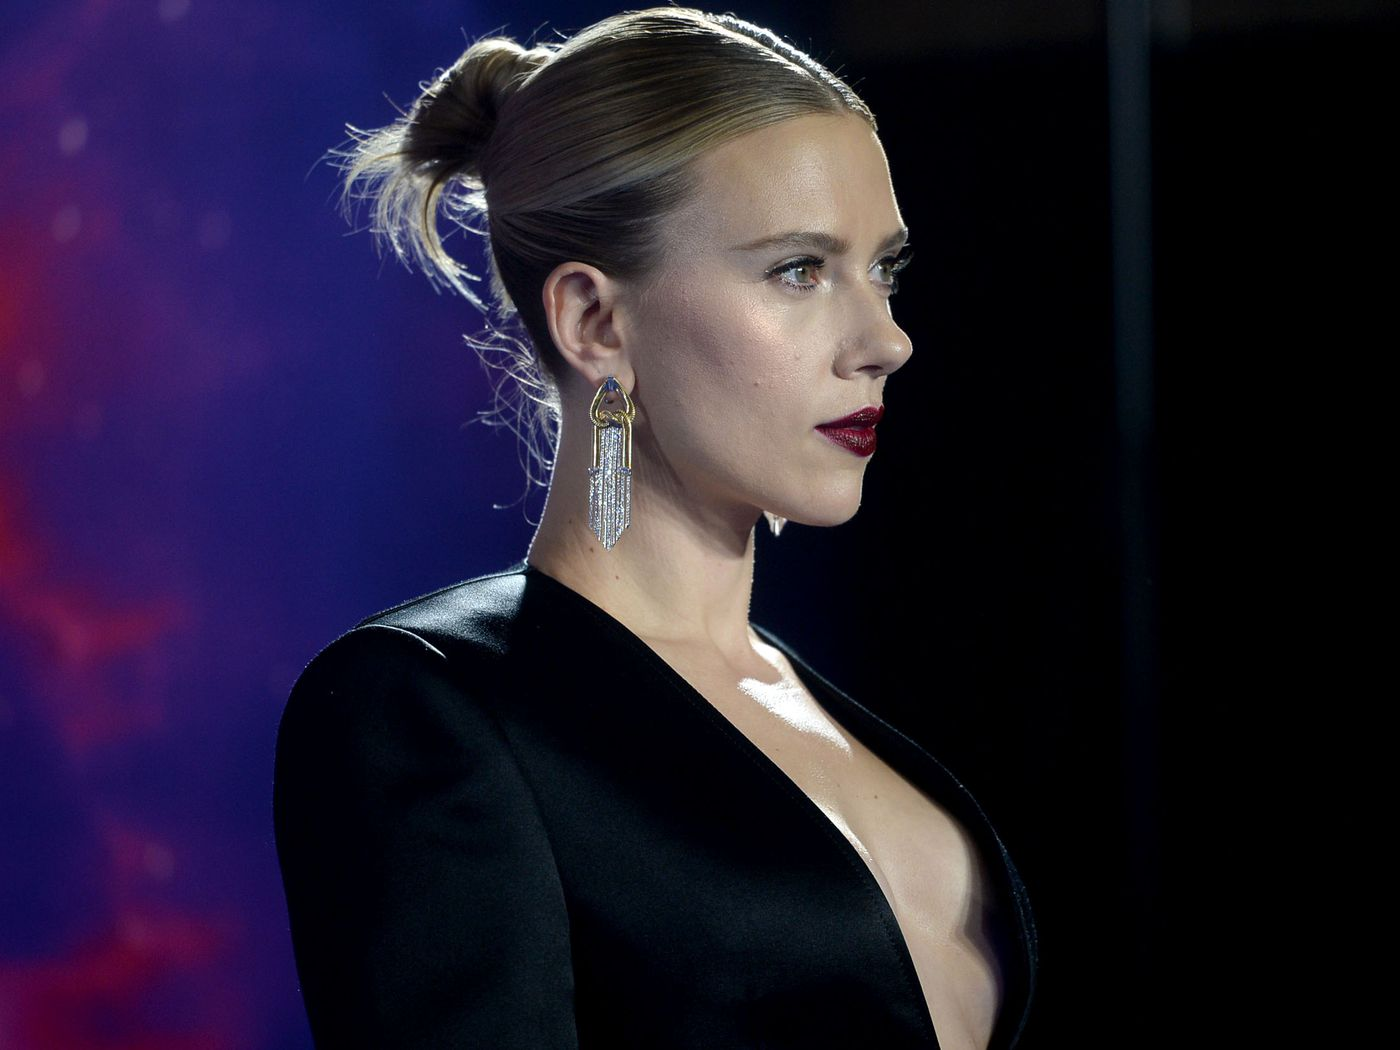 Scarlett Johansson Defends Comments On Politically Correct Casting Vox